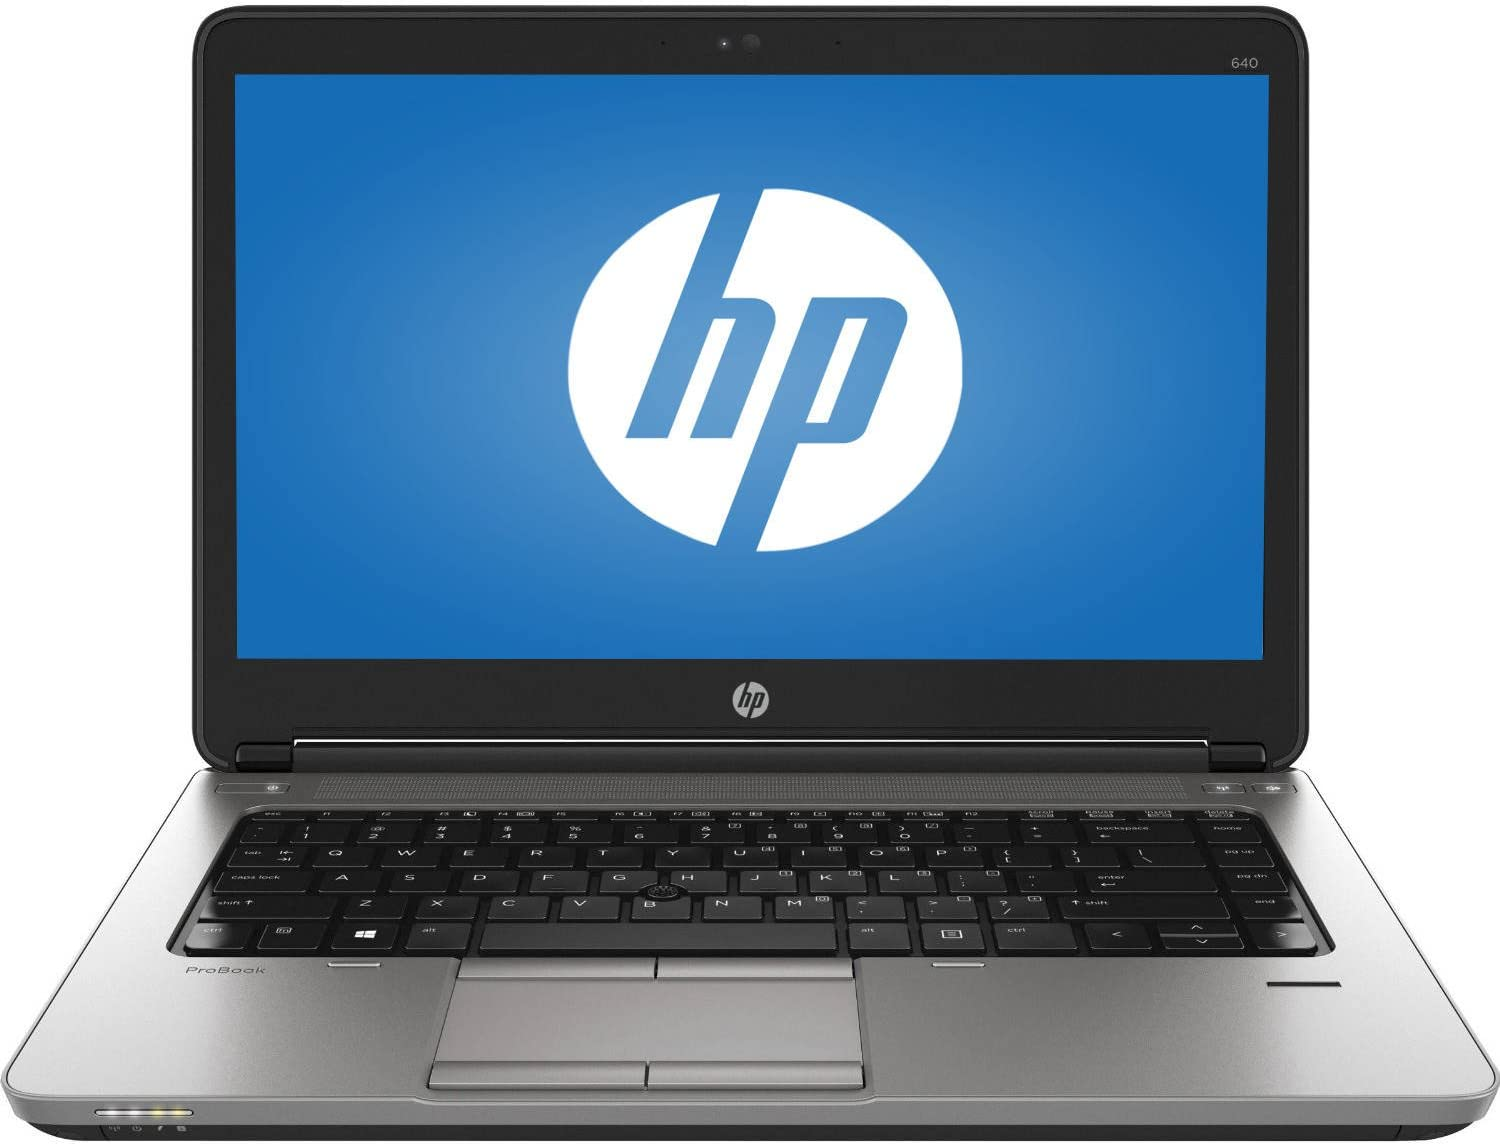 HP ProBook 640 G1 14in HD Anti-Glare Notebook Laptop, Intel Core I5-4200M Up to 3.1GHz, 8GB RAM, 500GB HDD, Windows 10 Professional (Renewed)